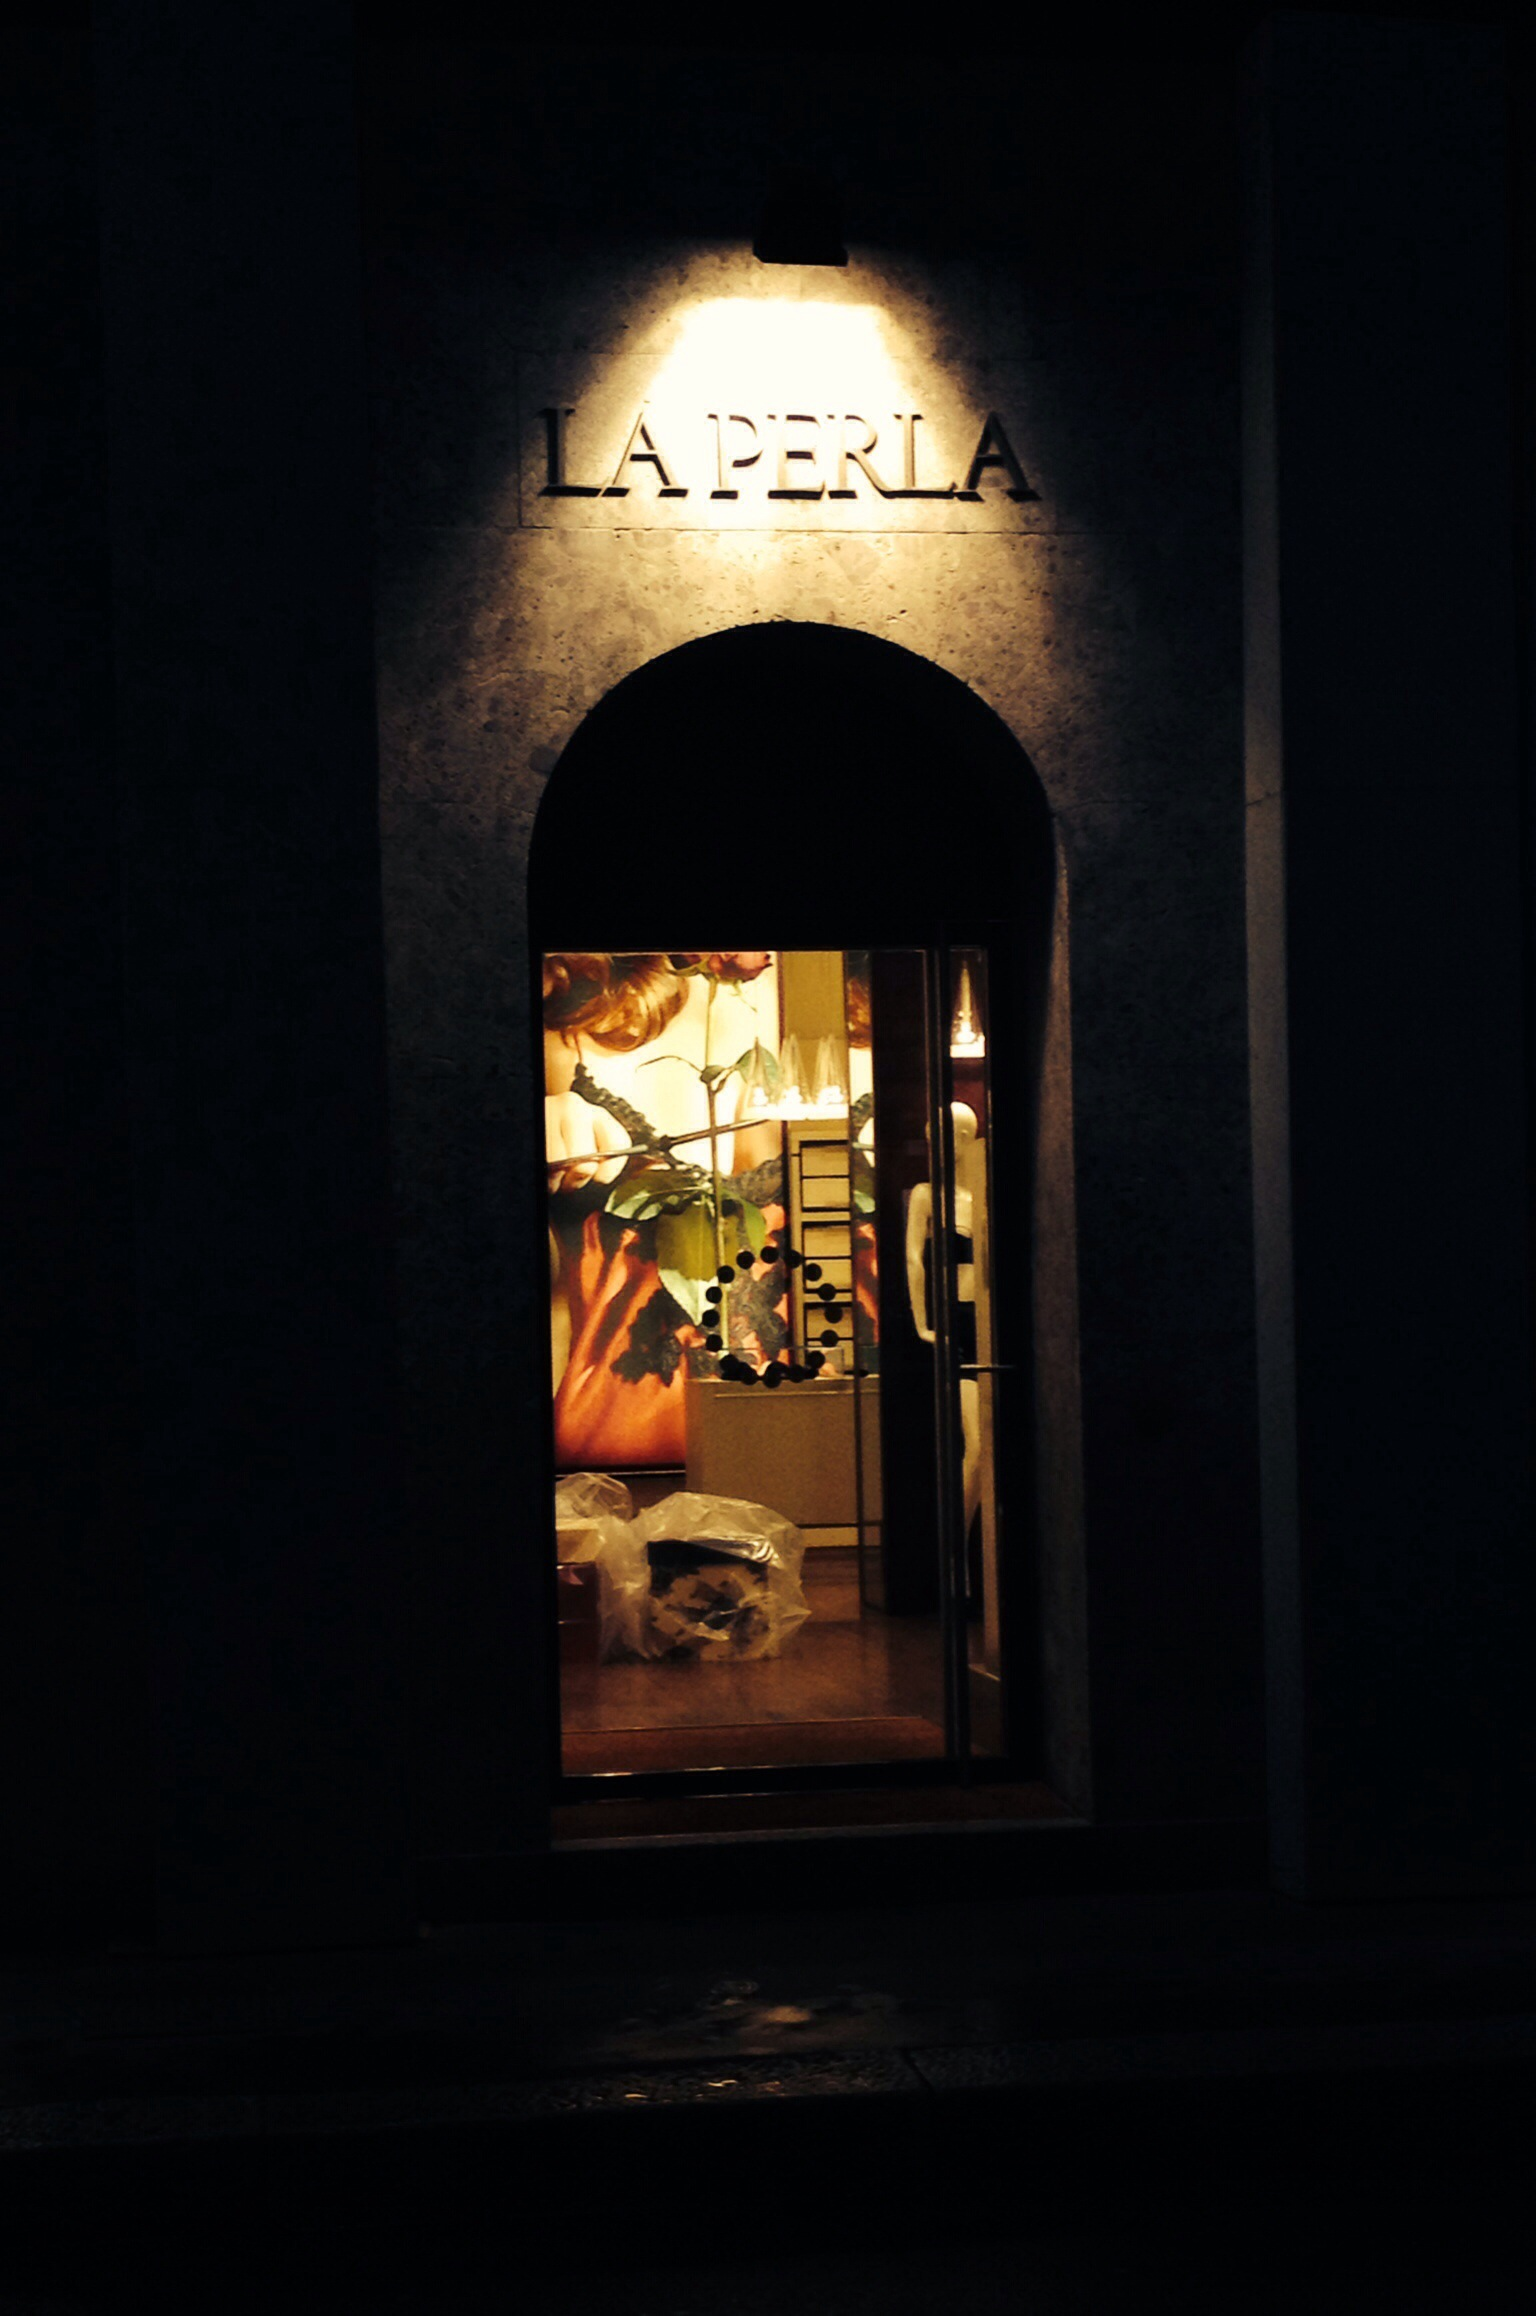 Another Stylish Snippet From My Milan Visit: Let there be beautiful underwear, let there be La Perla